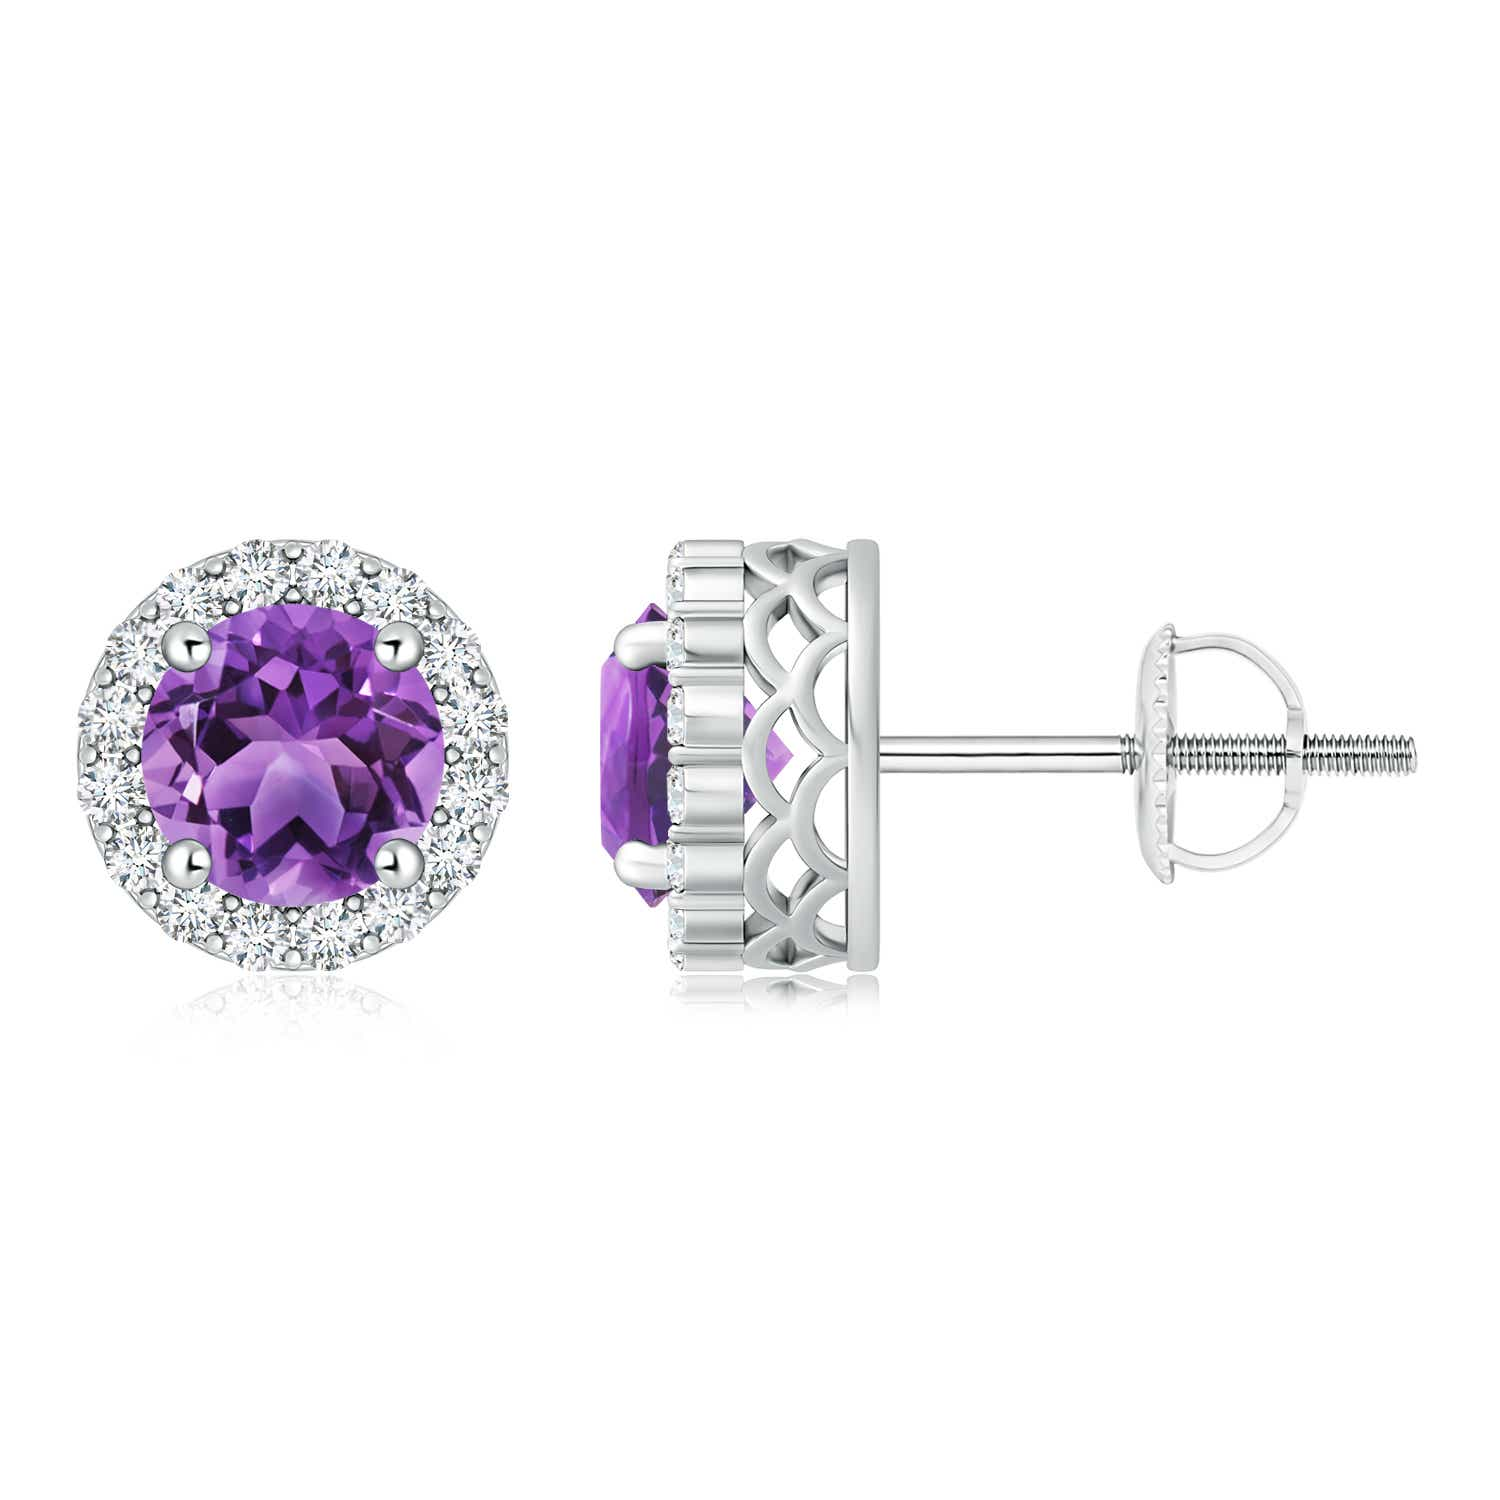 Angara Round Amethyst Stud Earrings with Diamond Halo in White Gold azyB9Q1hm